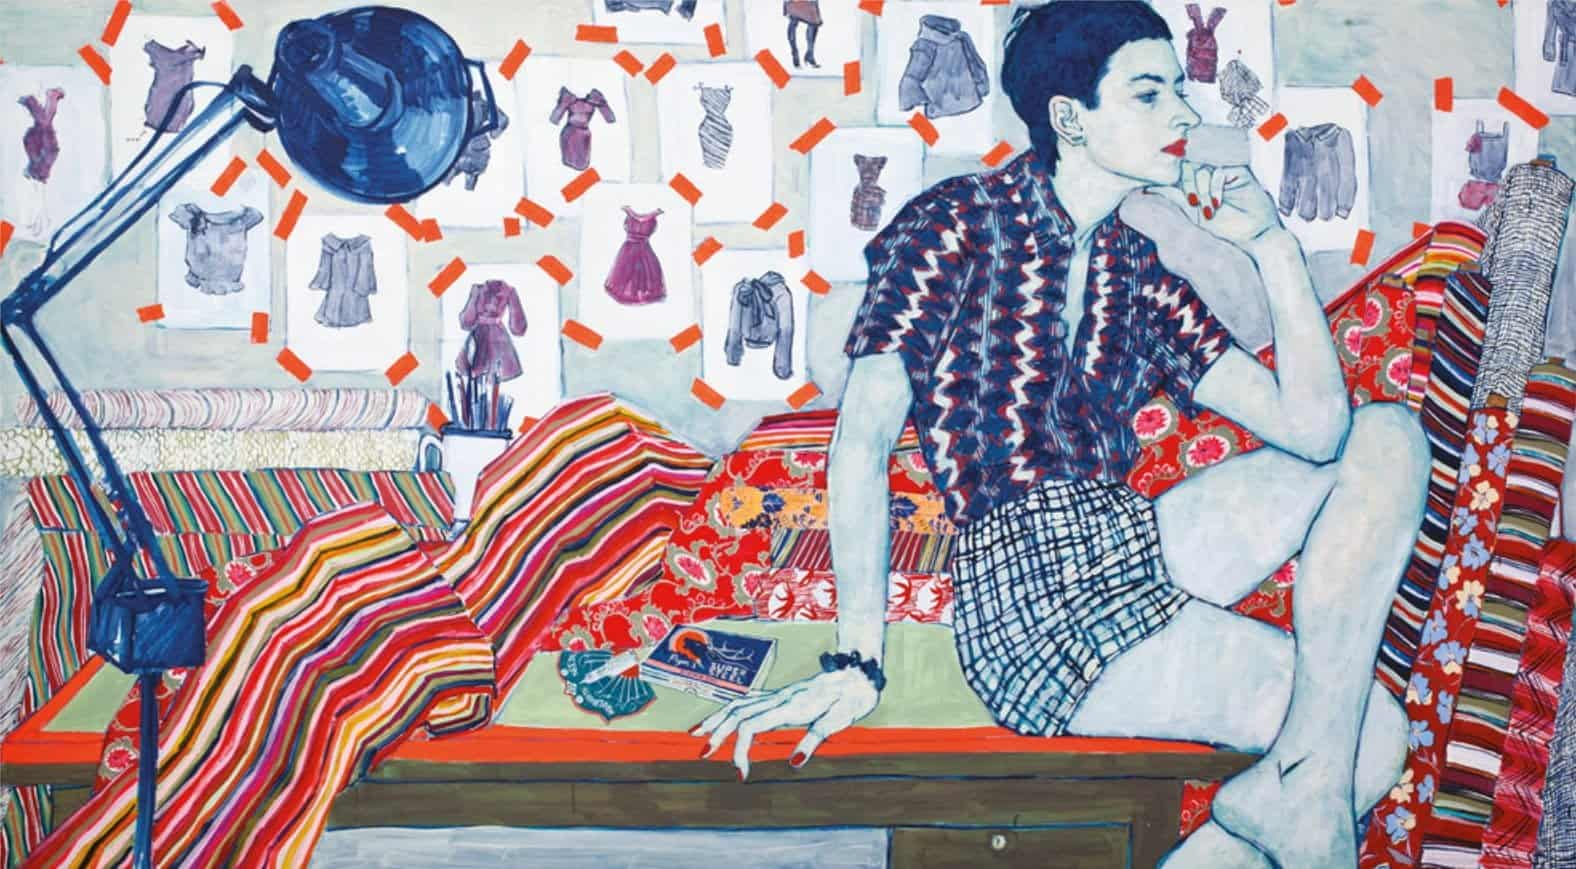 E. Starbuck, 2010, acrylic on canvas. 63 x 111 in.